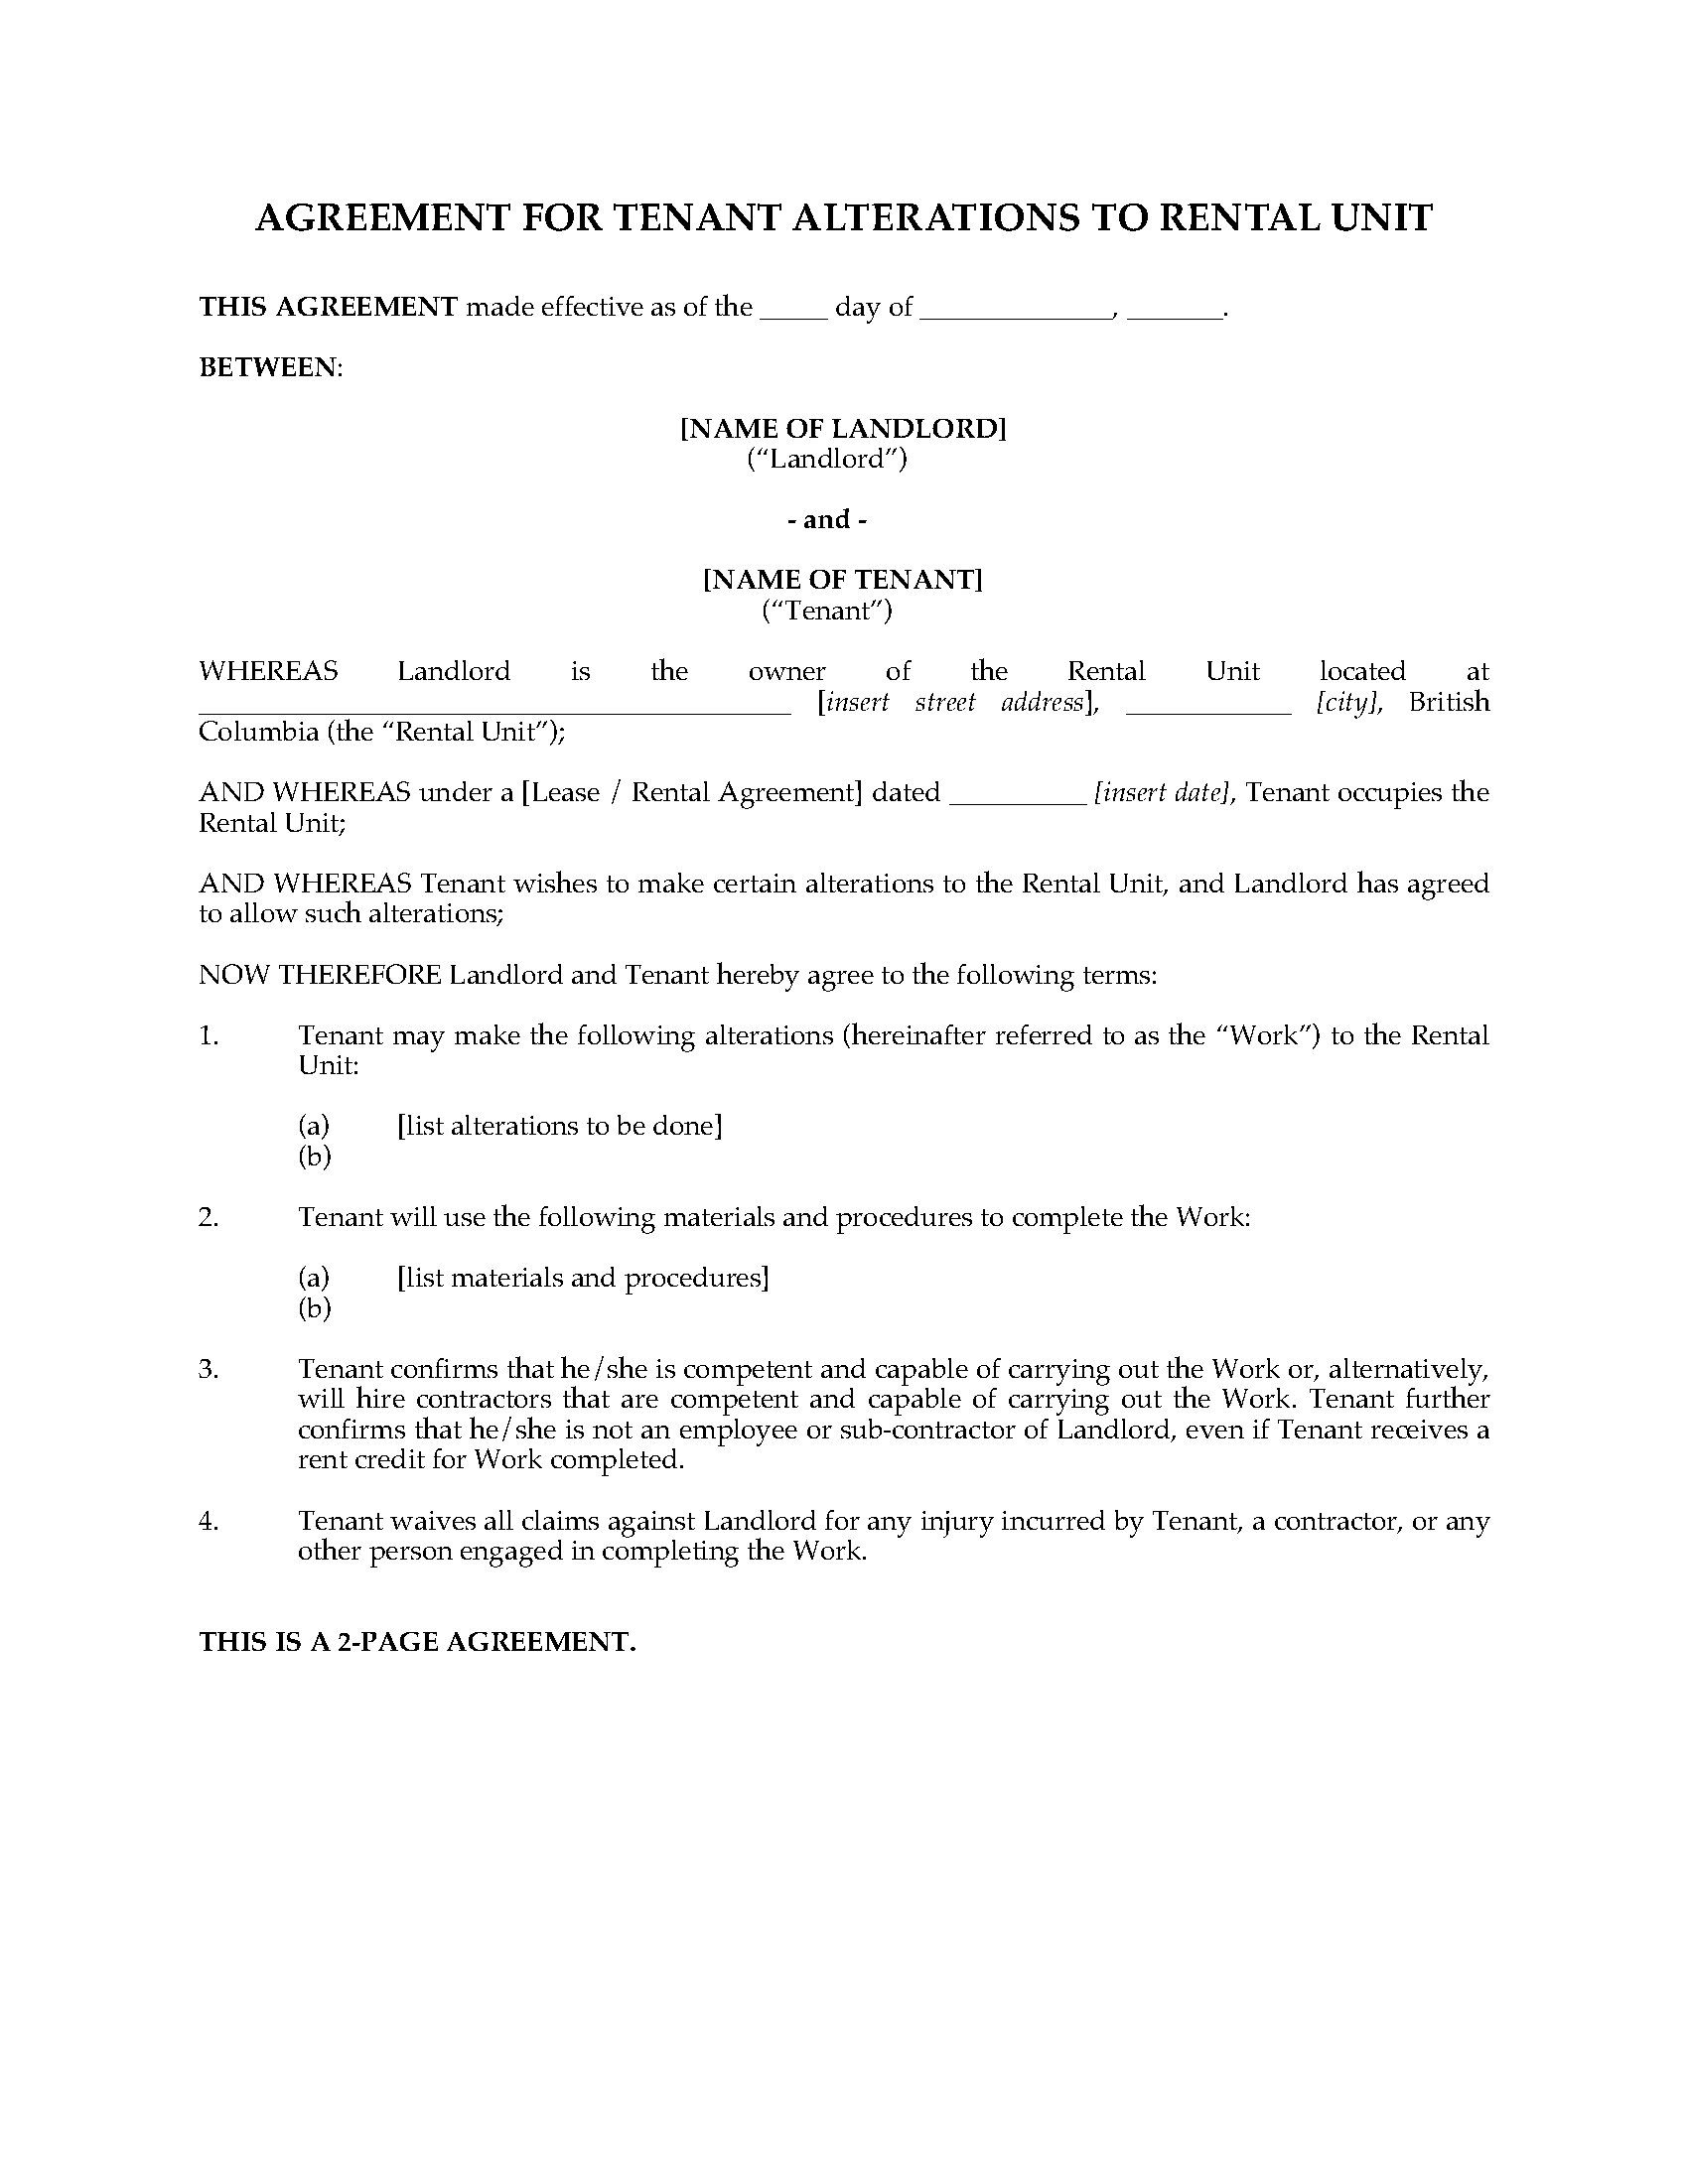 Bc Agreement For Tenant Alterations Legal Forms And Business